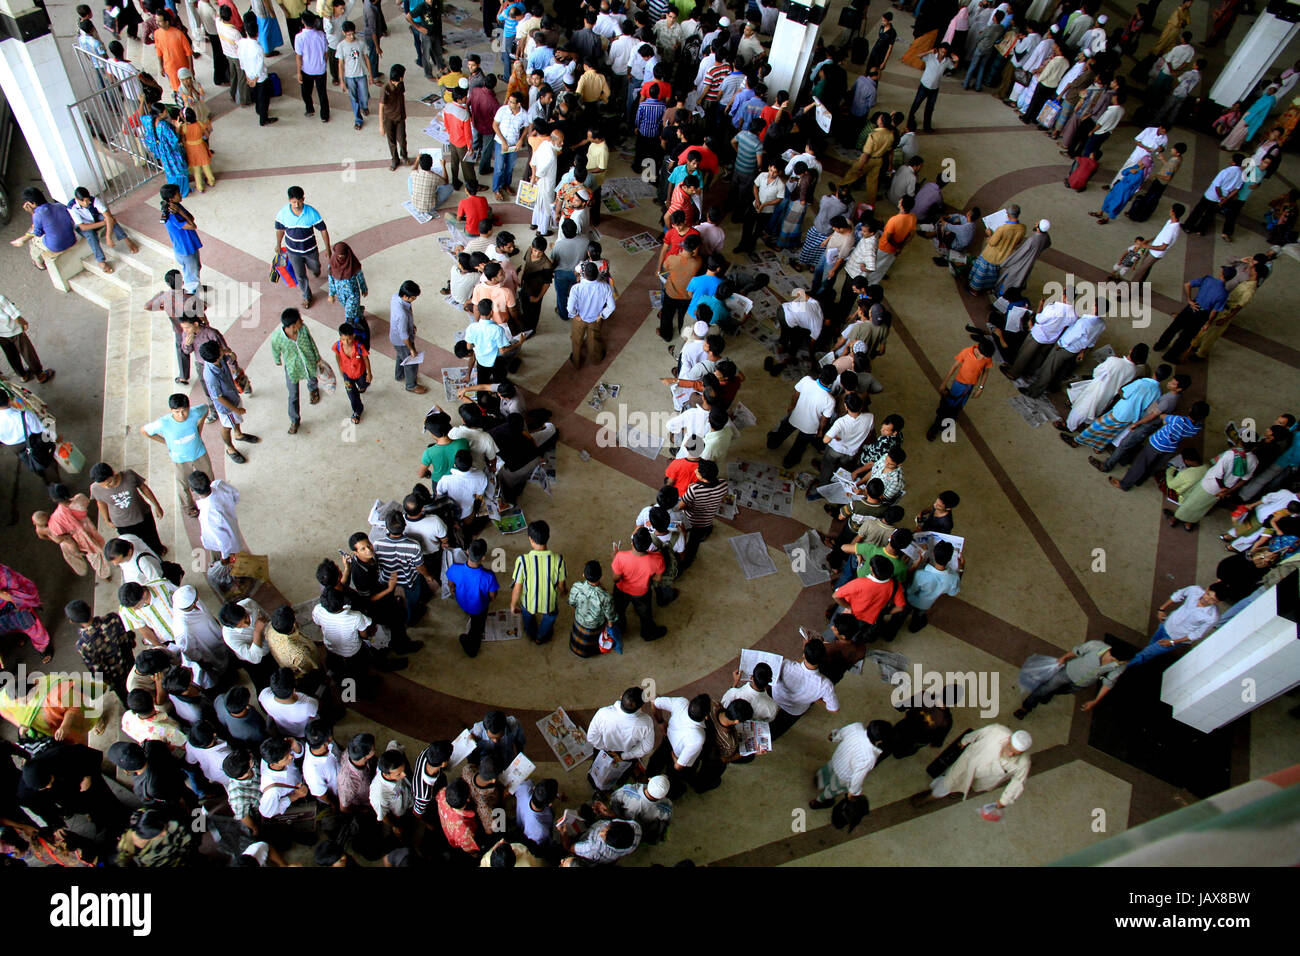 Dhaka city residents queue up at Kamlapur Railway Station in a bid to secure a ticket to head home for the Eid-ul - Stock Image